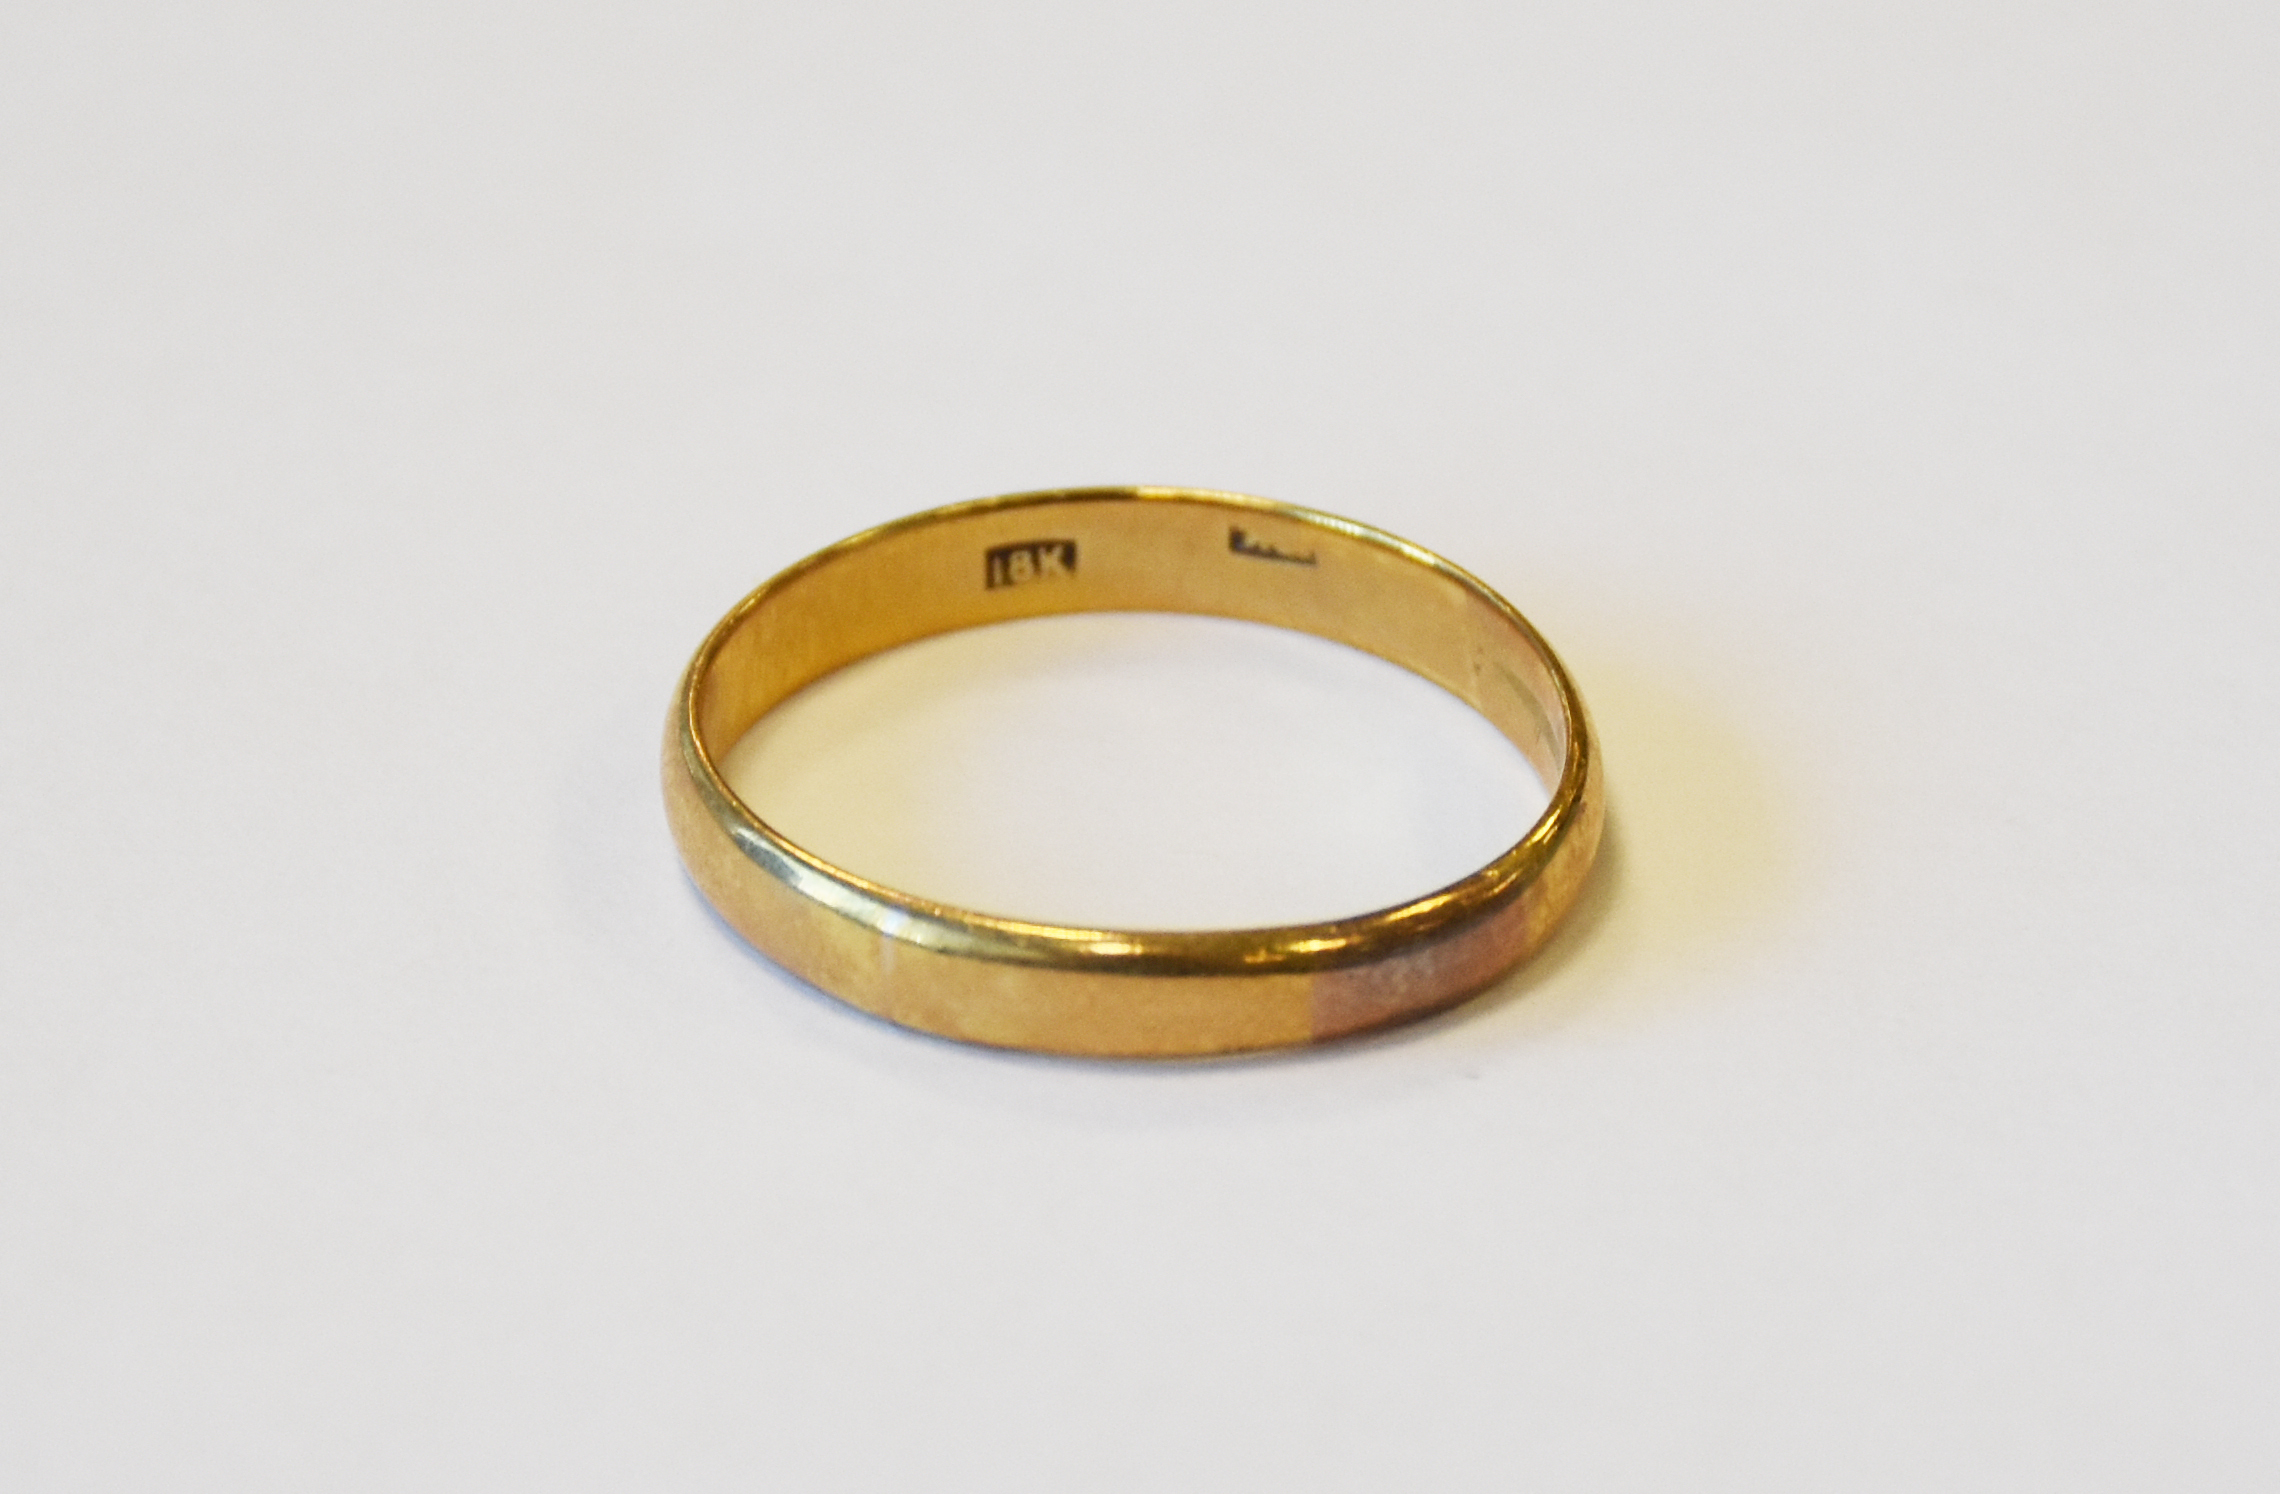 Wedding ring found at Dachau Concentration Camp. (Holocaust Memorial Center Permanent Collection)